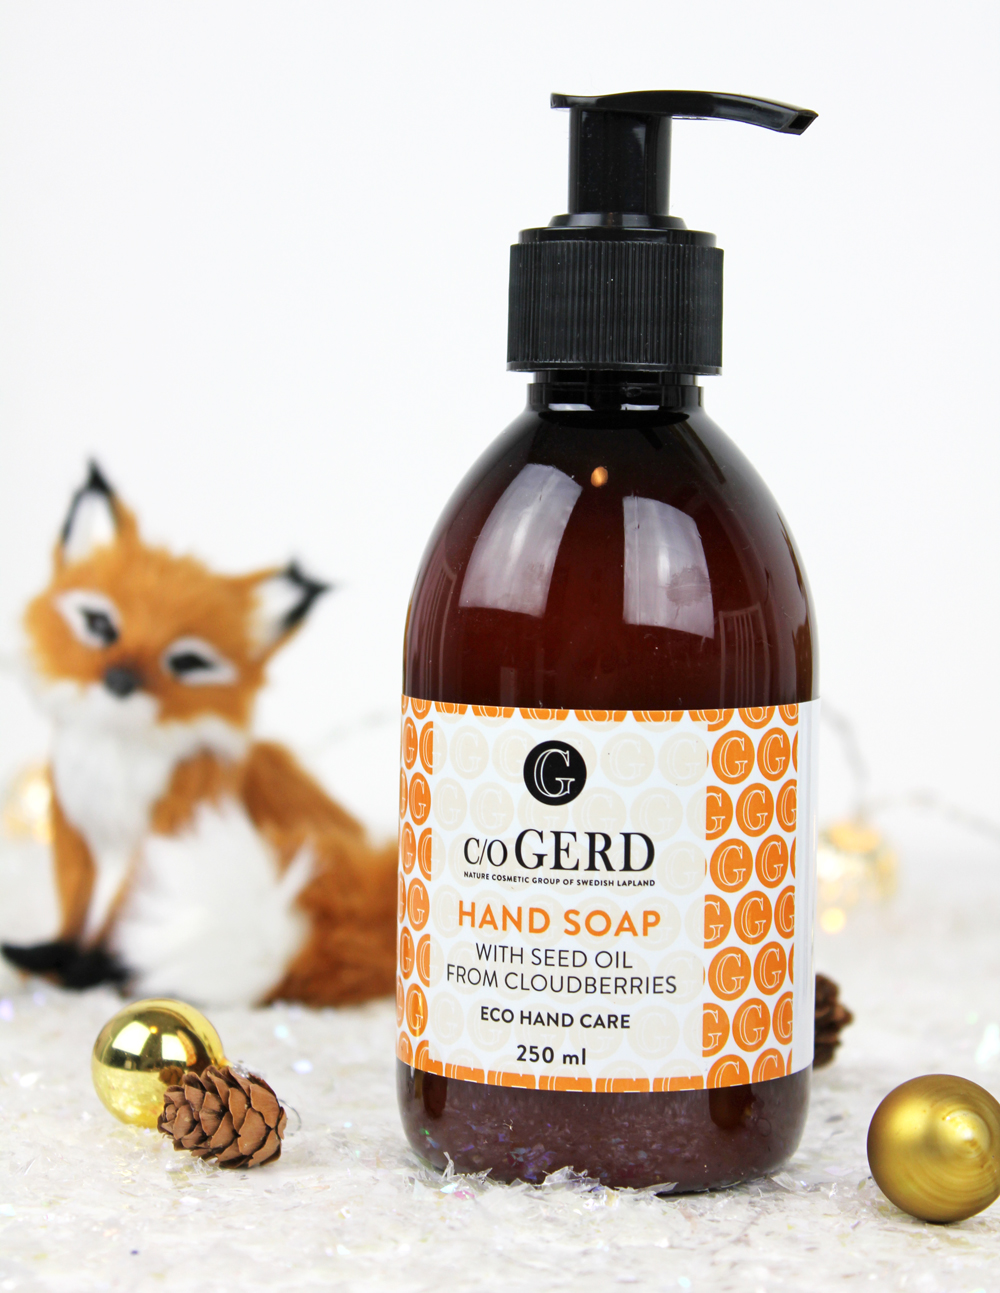 care-of-gerd-hand-soap-cloudberries